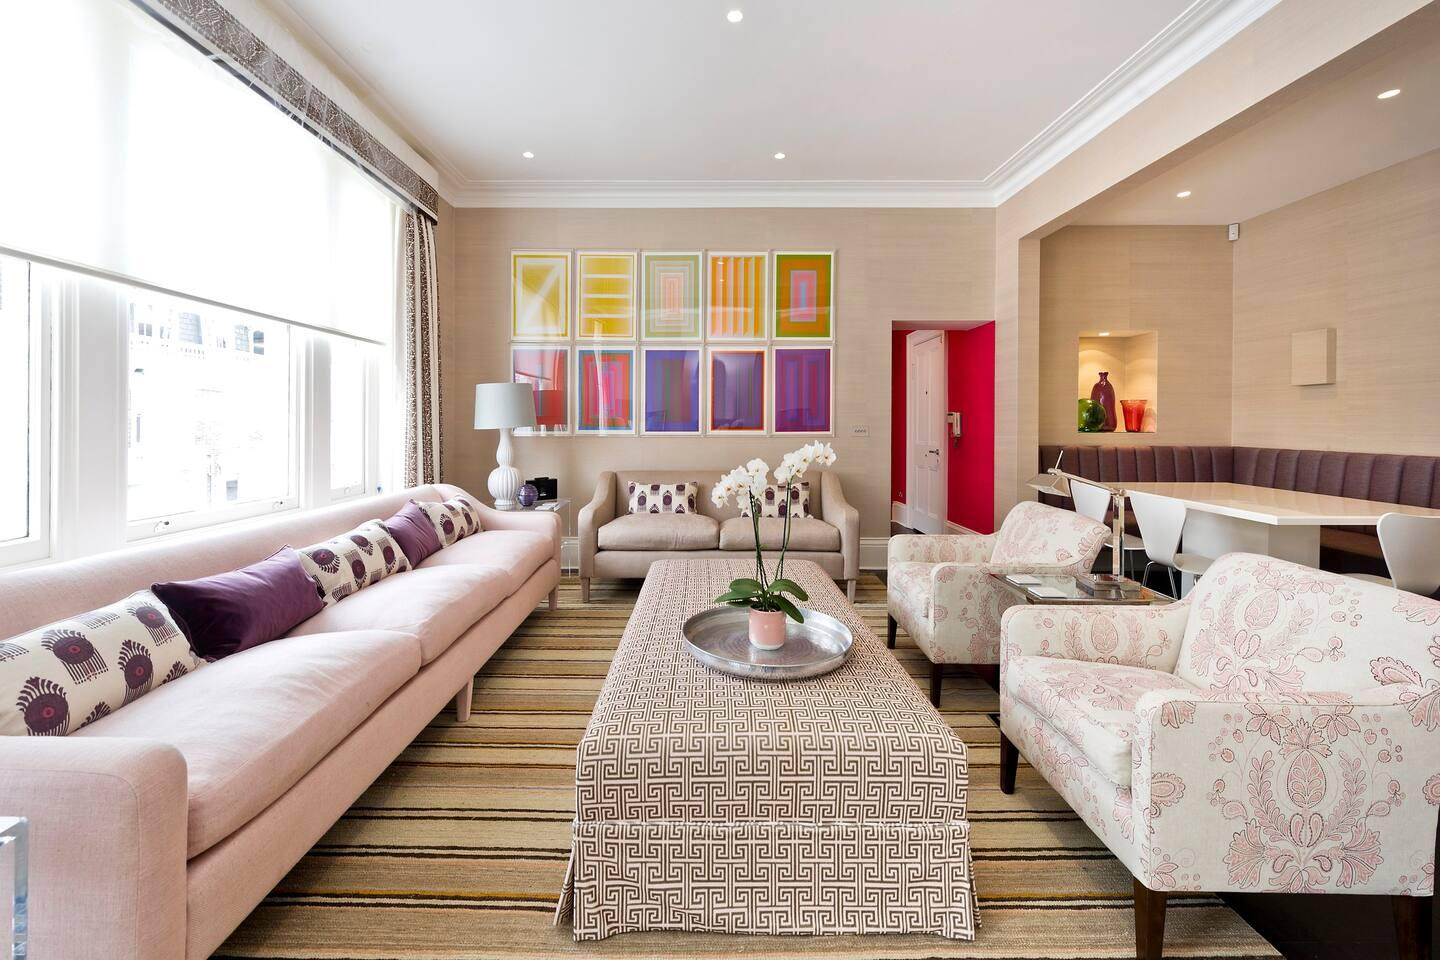 Property Image 1 - Sophisticated, Luxurious Apartment; Walk to Dining & Attractions